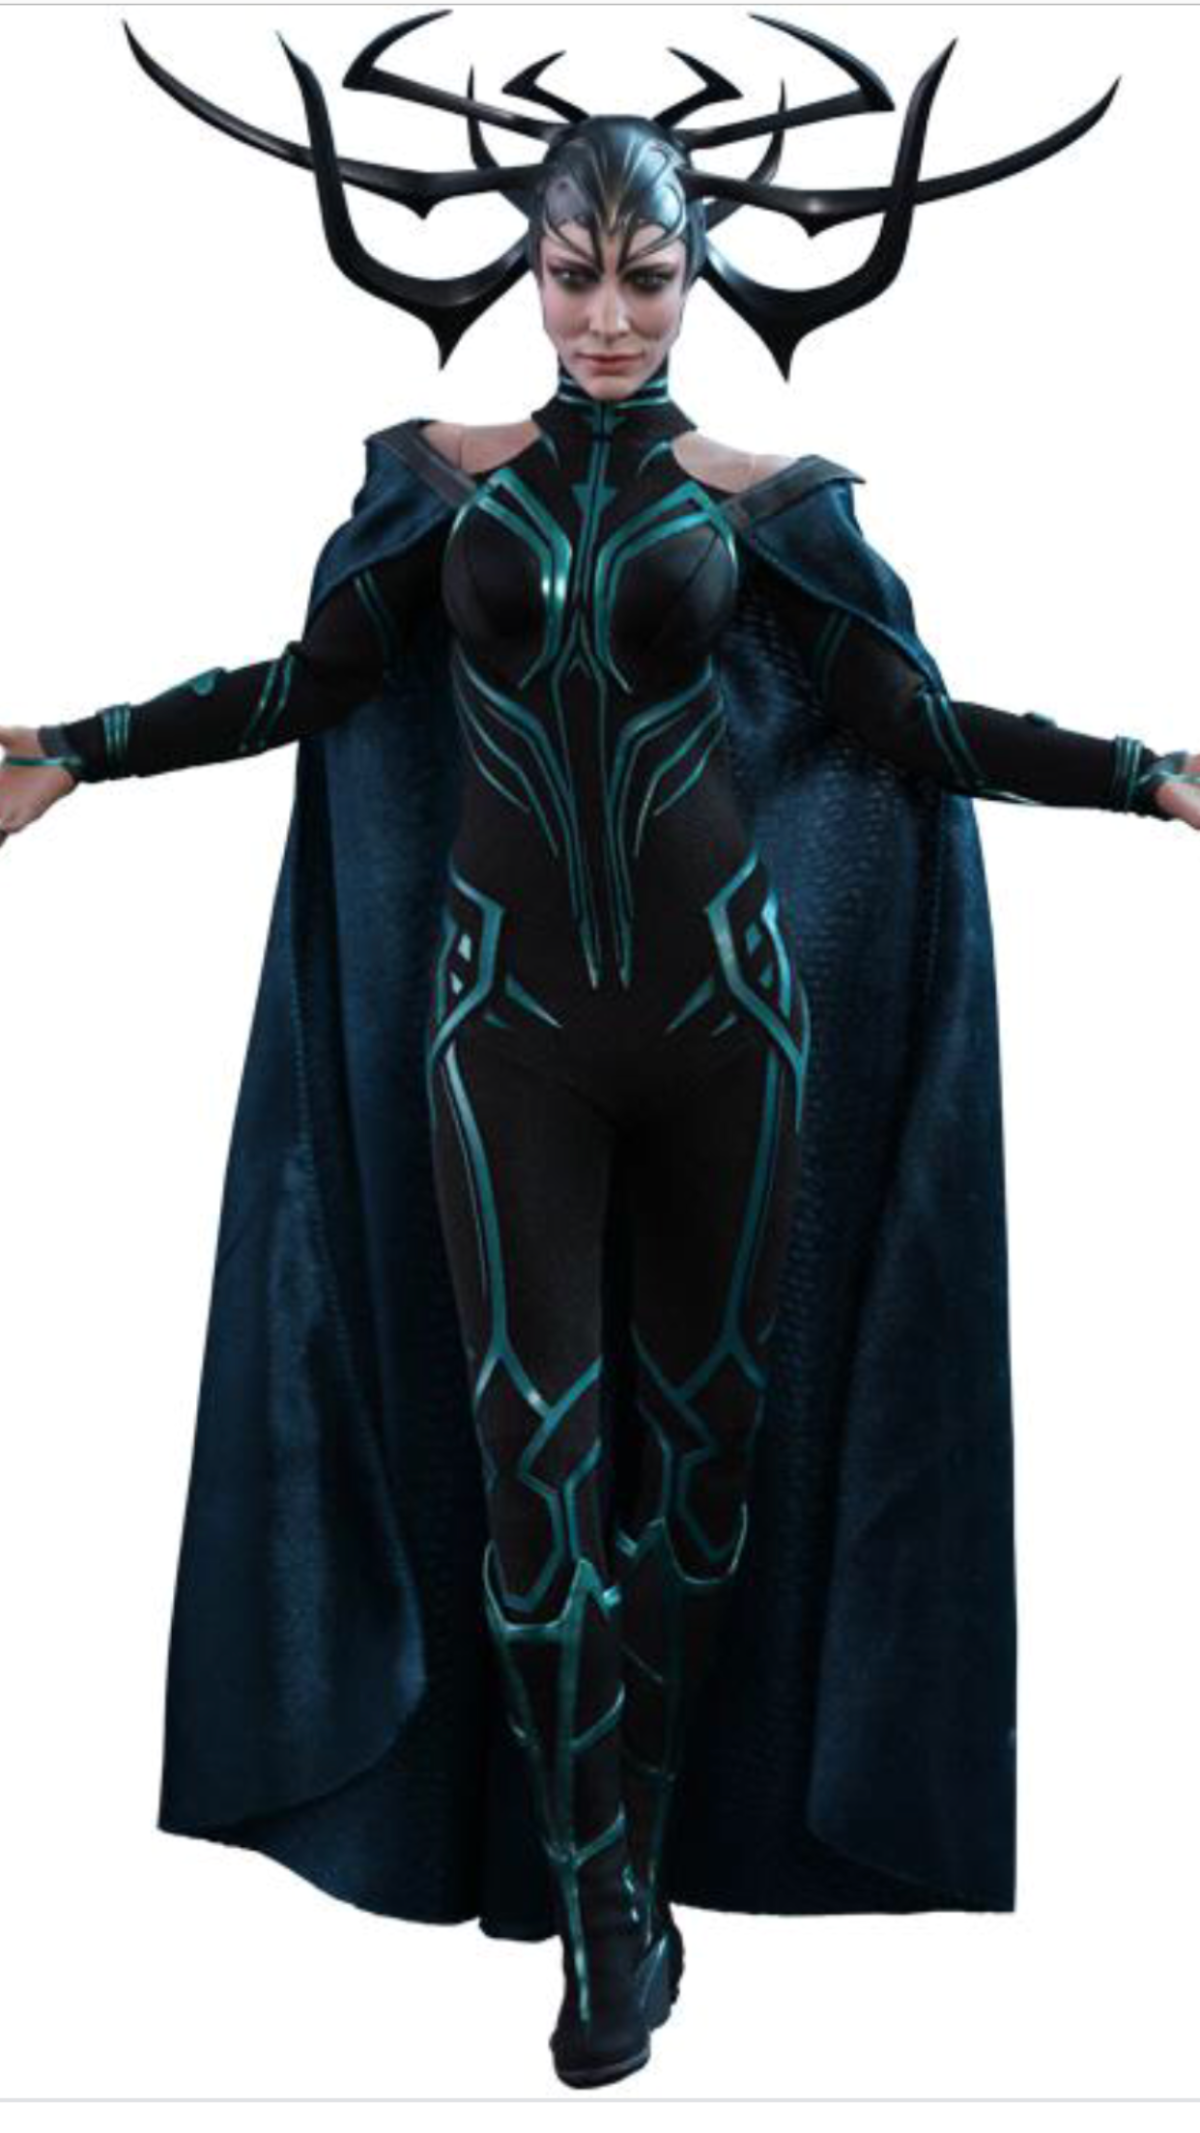 Hela of a good costume!-Part 1